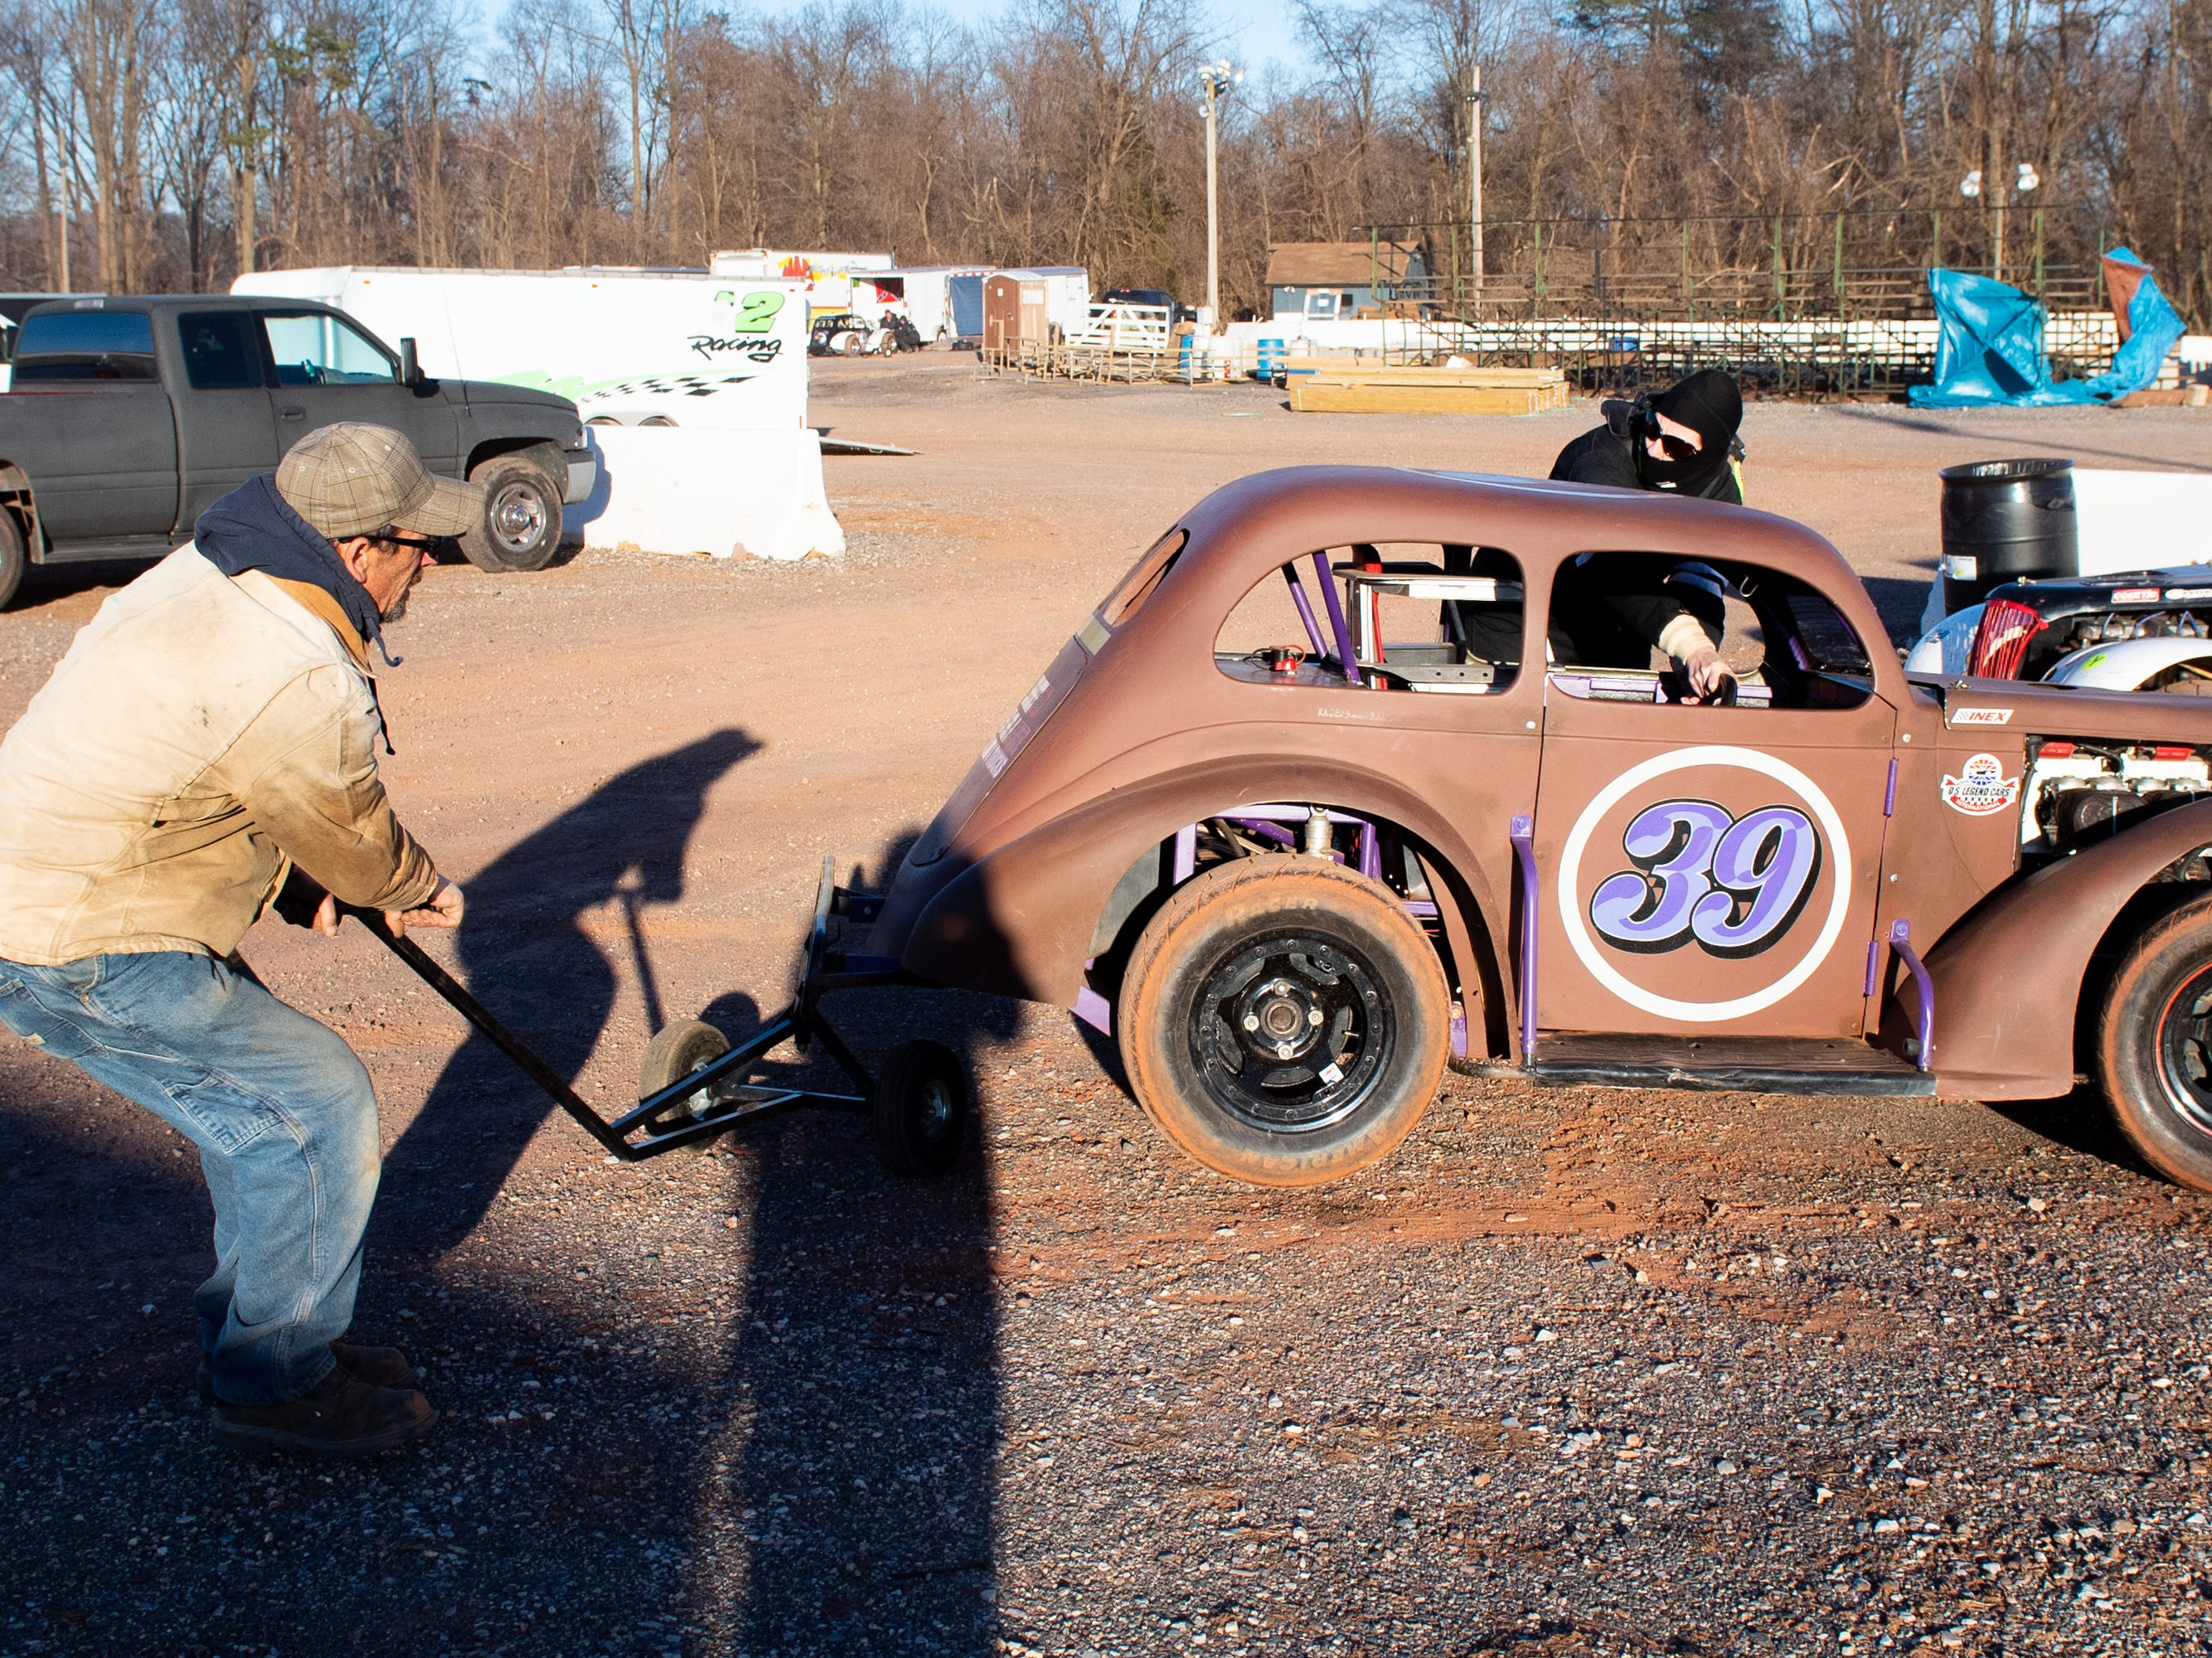 Bonnie Lee and her husband reposition the car during the 2019 season opener at BAPS Motor Speedway, March 23, 2019.